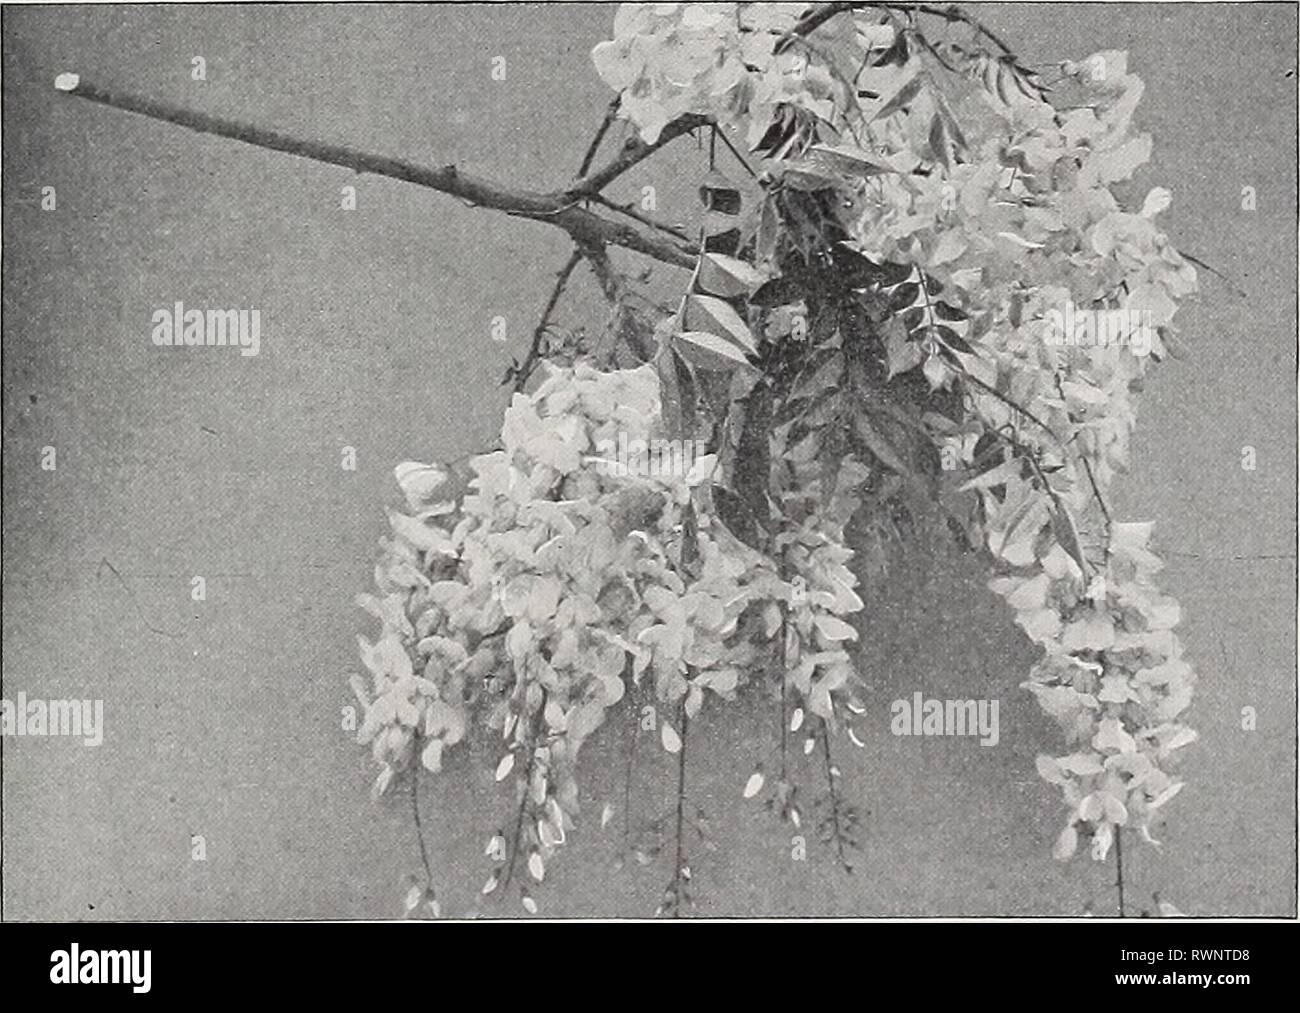 Ellwanger & Barry  Mount Ellwanger & Barry : Mount Hope nurseries ellwangerbarrymo1898moun Year: 1898  GENERAL CATALOGUE. 95 PERIPLOCA. Silk Vine. Schlinge, Ger. P. Graeca. Native of Southern Europe. A rapid-growing beautiful climber. Will twine around a tree or other support to the height of 30 or 40 feet. Fol- iage glossy, and purple brown axillary clusters of flowers. 35c. TECOMA. Trumpet Flower. Jasmintrompete, Ger. Bignone, Fr. T. radicans. American Climbing Trumpet Creeper A splendid, hardy, climbing plant, with large, trumpet-shaped scarlet flowrers in August. 35c. var. grandiflora. Lar Stock Photo